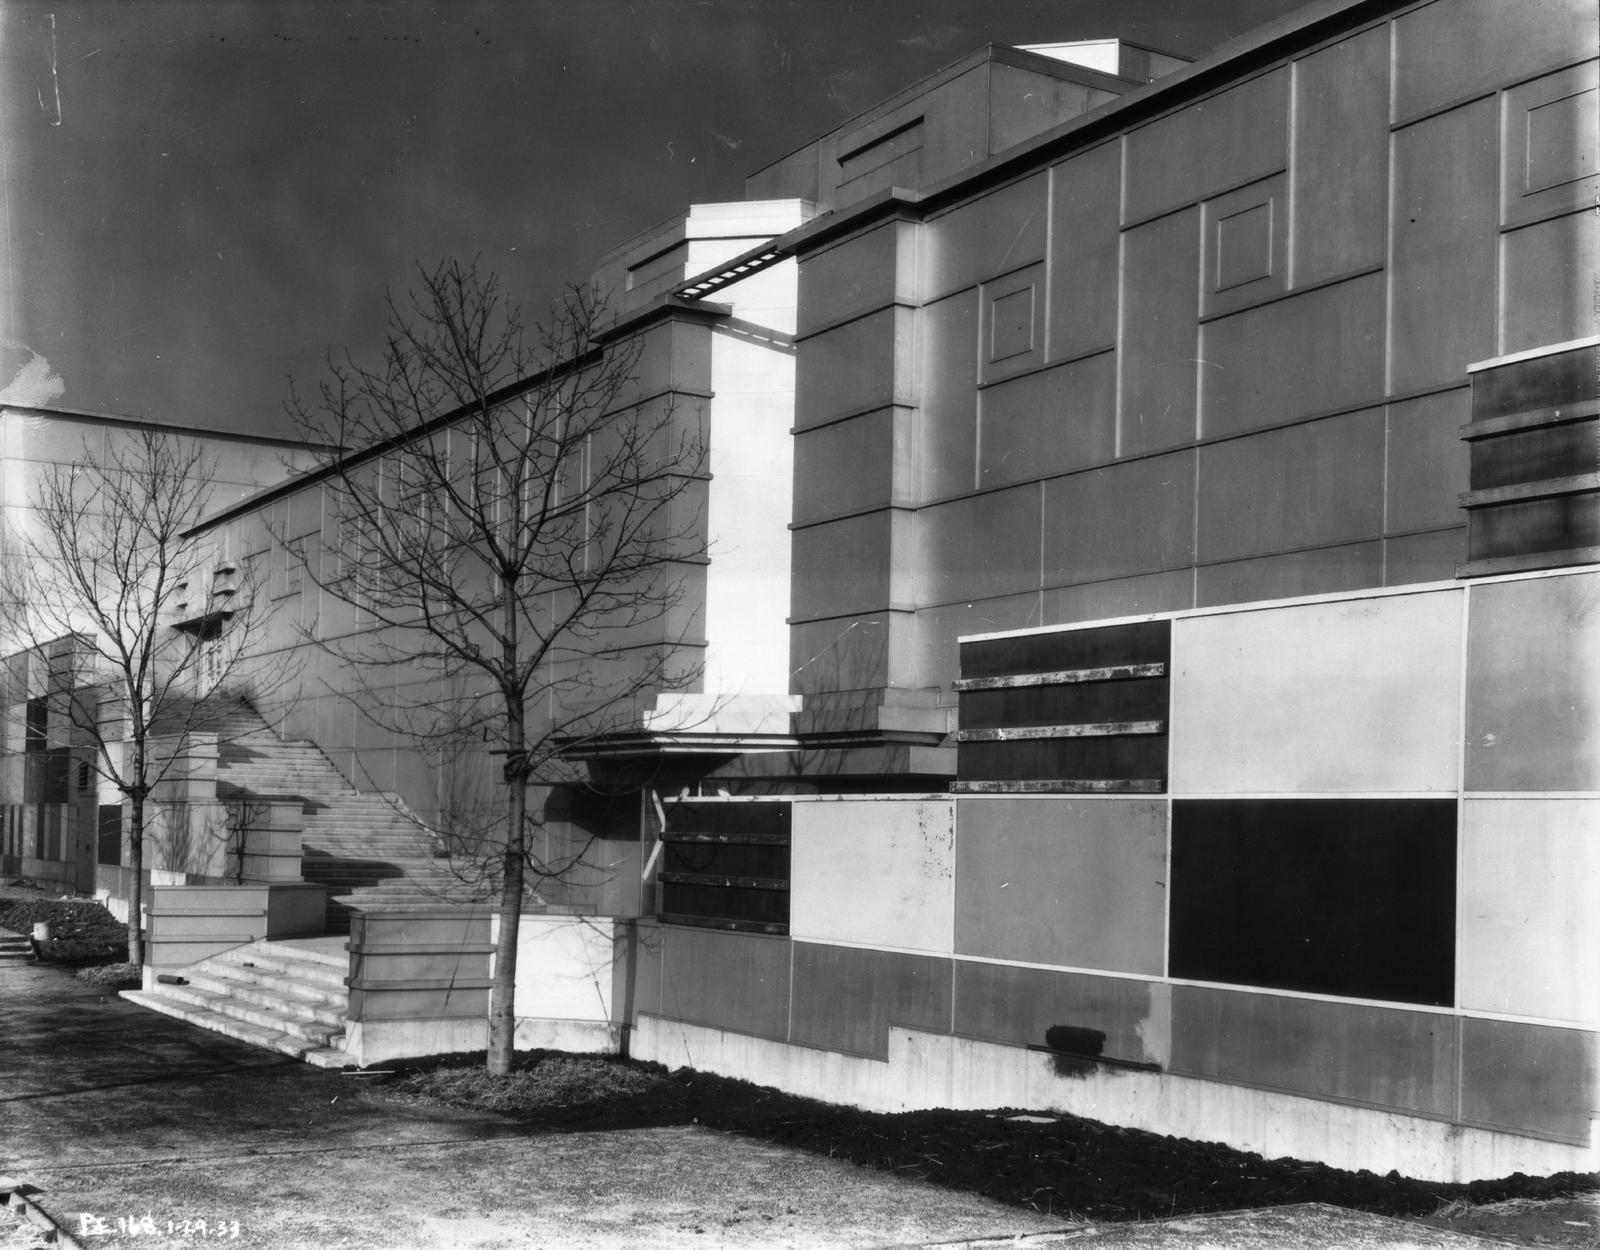 [Exterior view of the Social Science wing of the Electrical Group building. The photo was taken in 1933 before the grand opening of the Chicago World's Fair.]